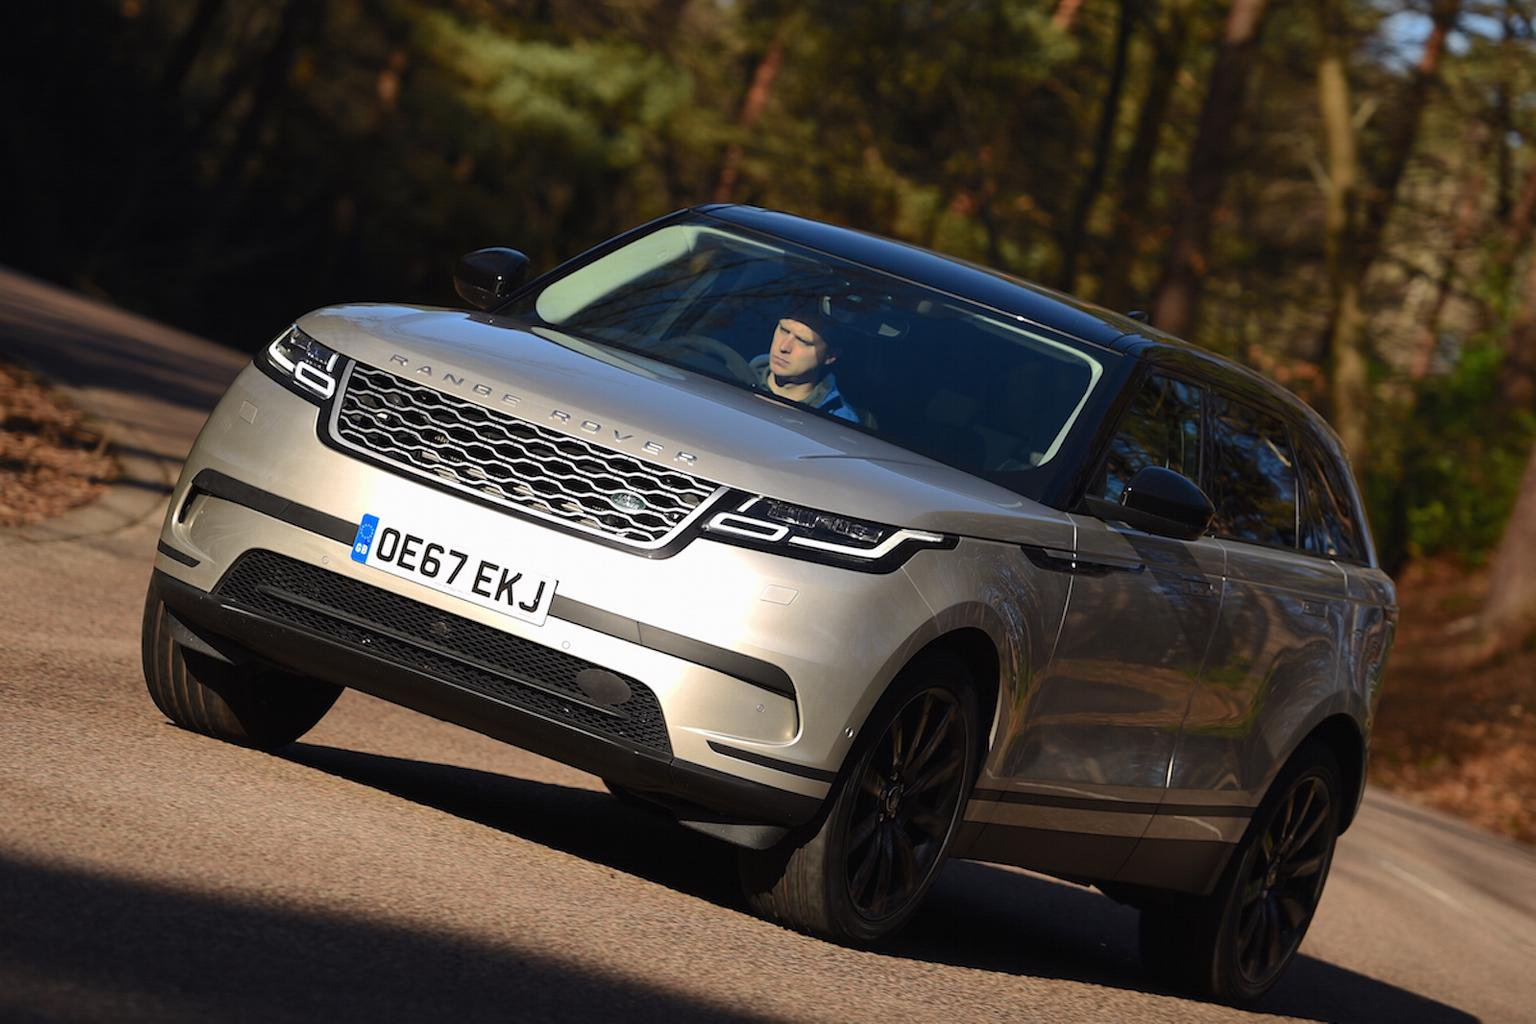 2018 Range Rover Velar P300 review – price, specs and release date